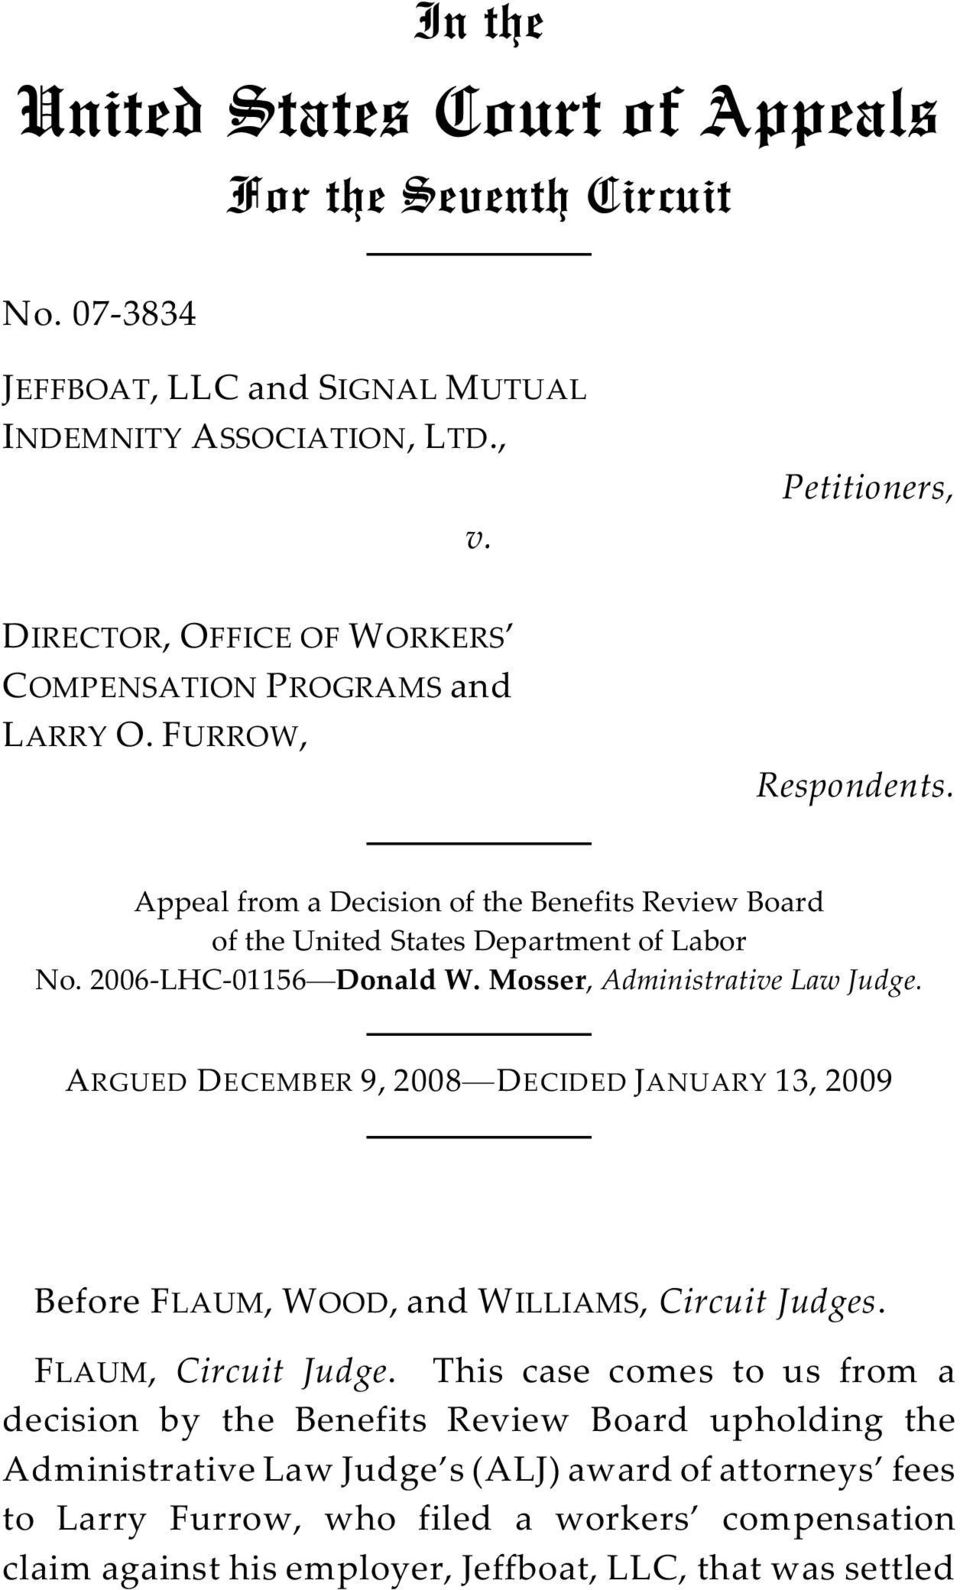 United States Court of Appeals - PDF